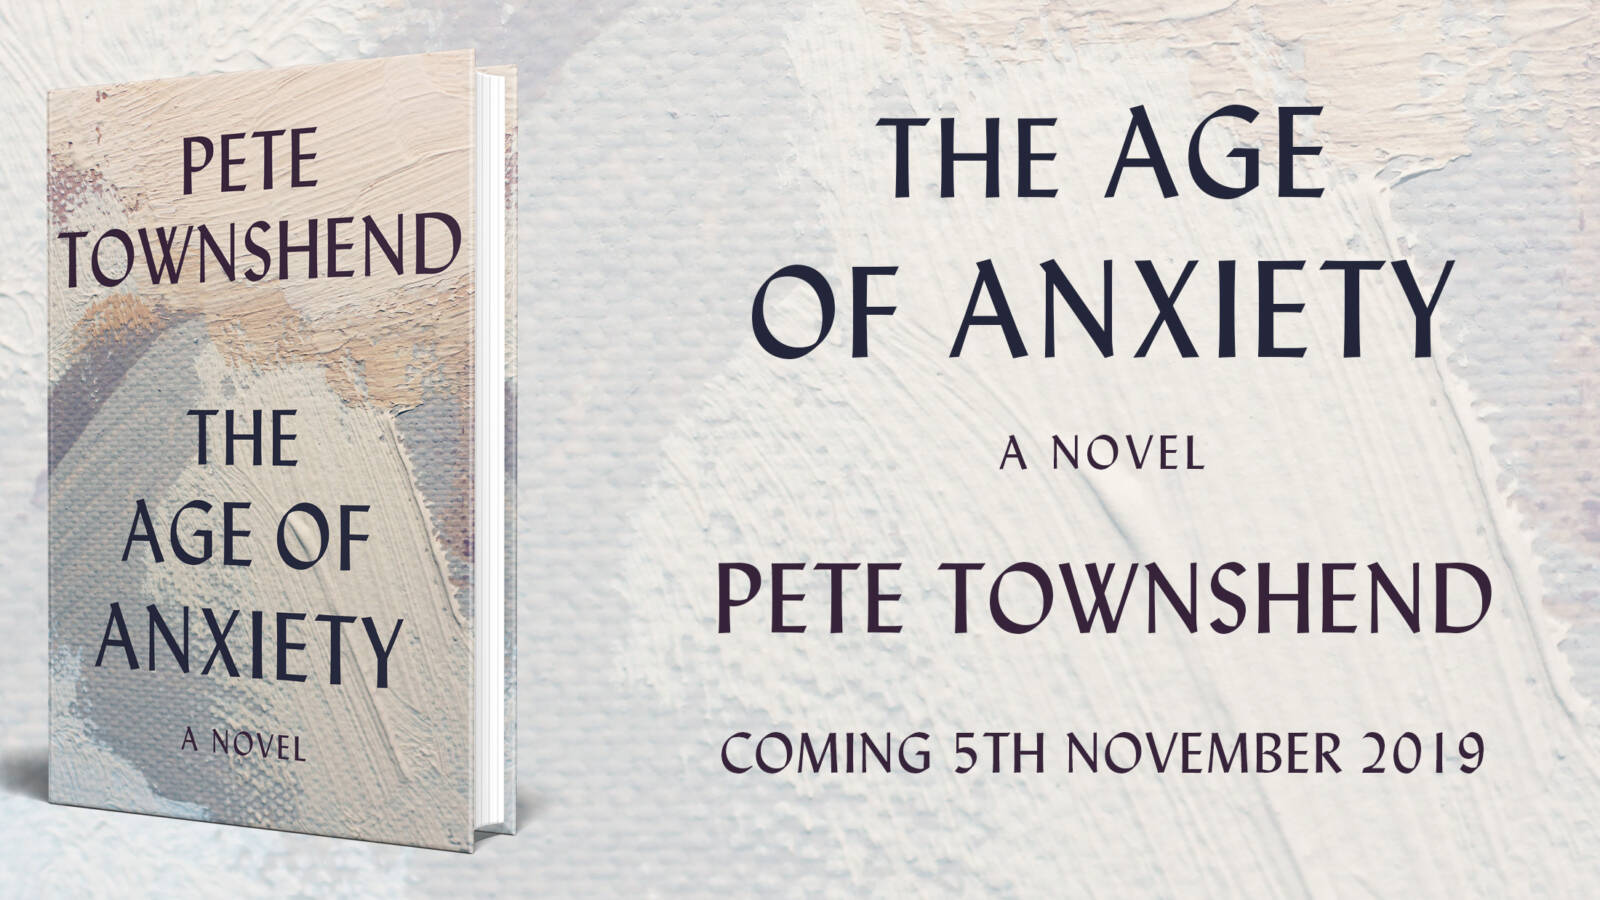 Age of Anxiety by Pete Townshend